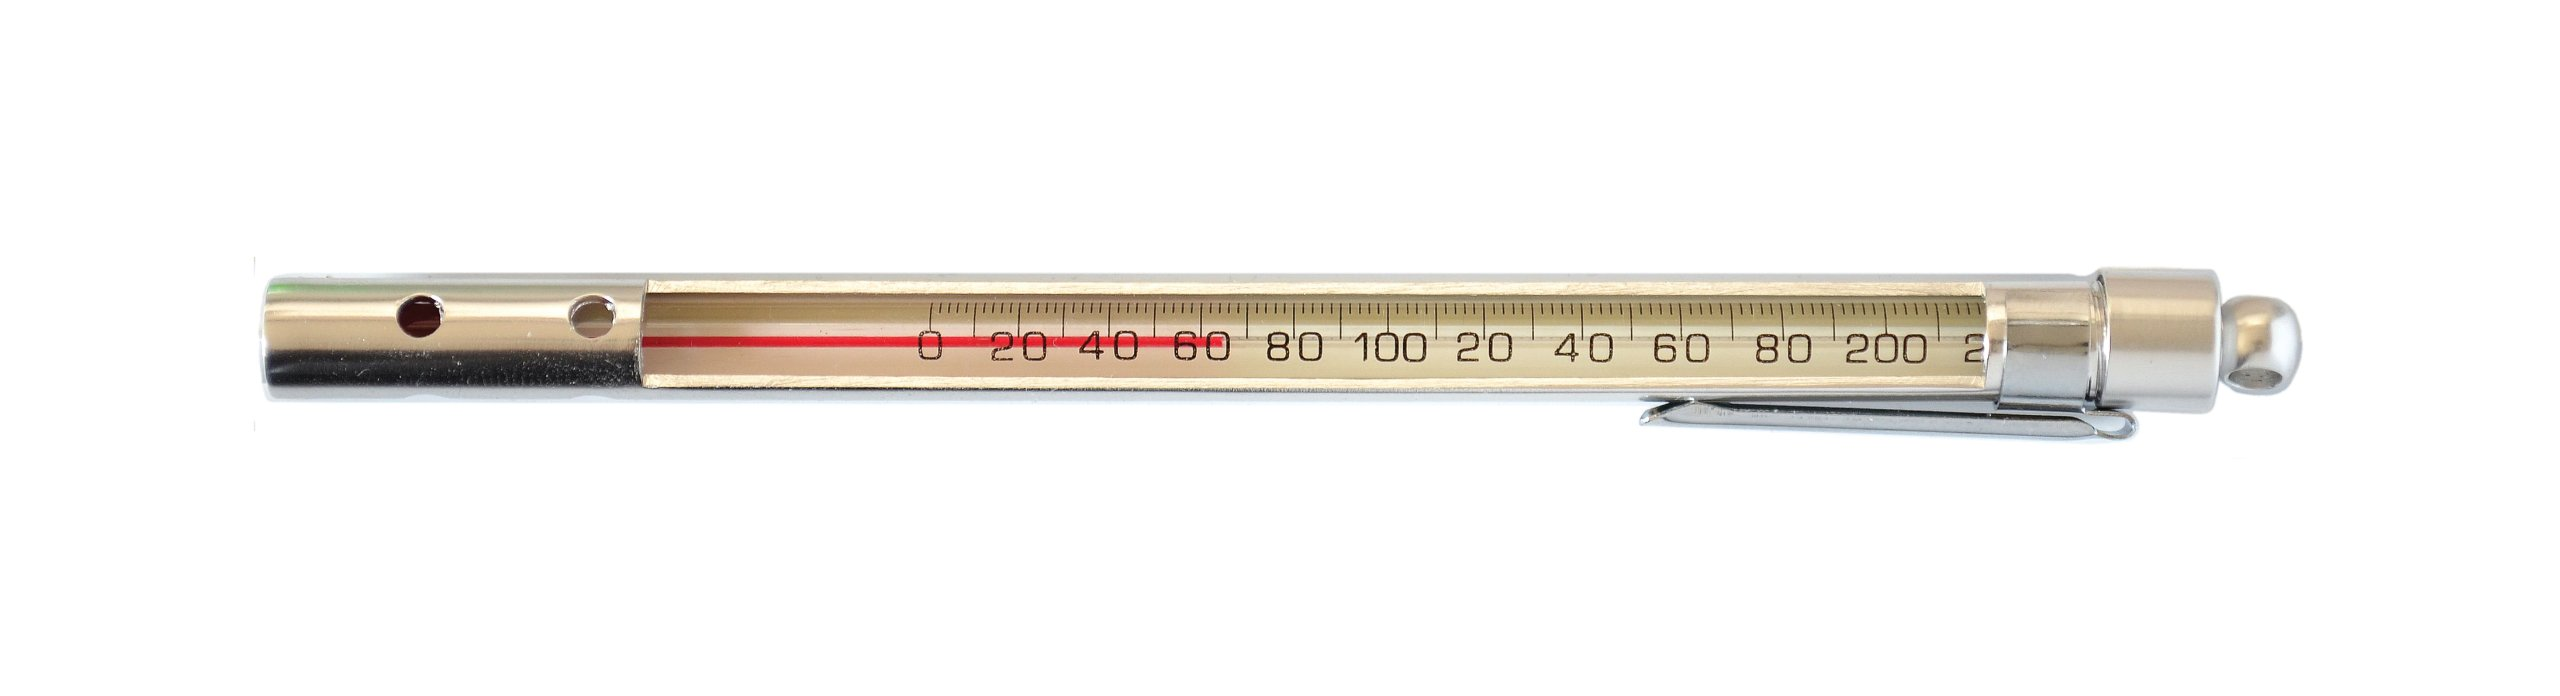 Thermco BM2012PS Red Spirit Filled Pocket Test Thermometer with Enclosed Aluminum Case, 30 to 120°F Range, 1.0°F Division, Total Immersion